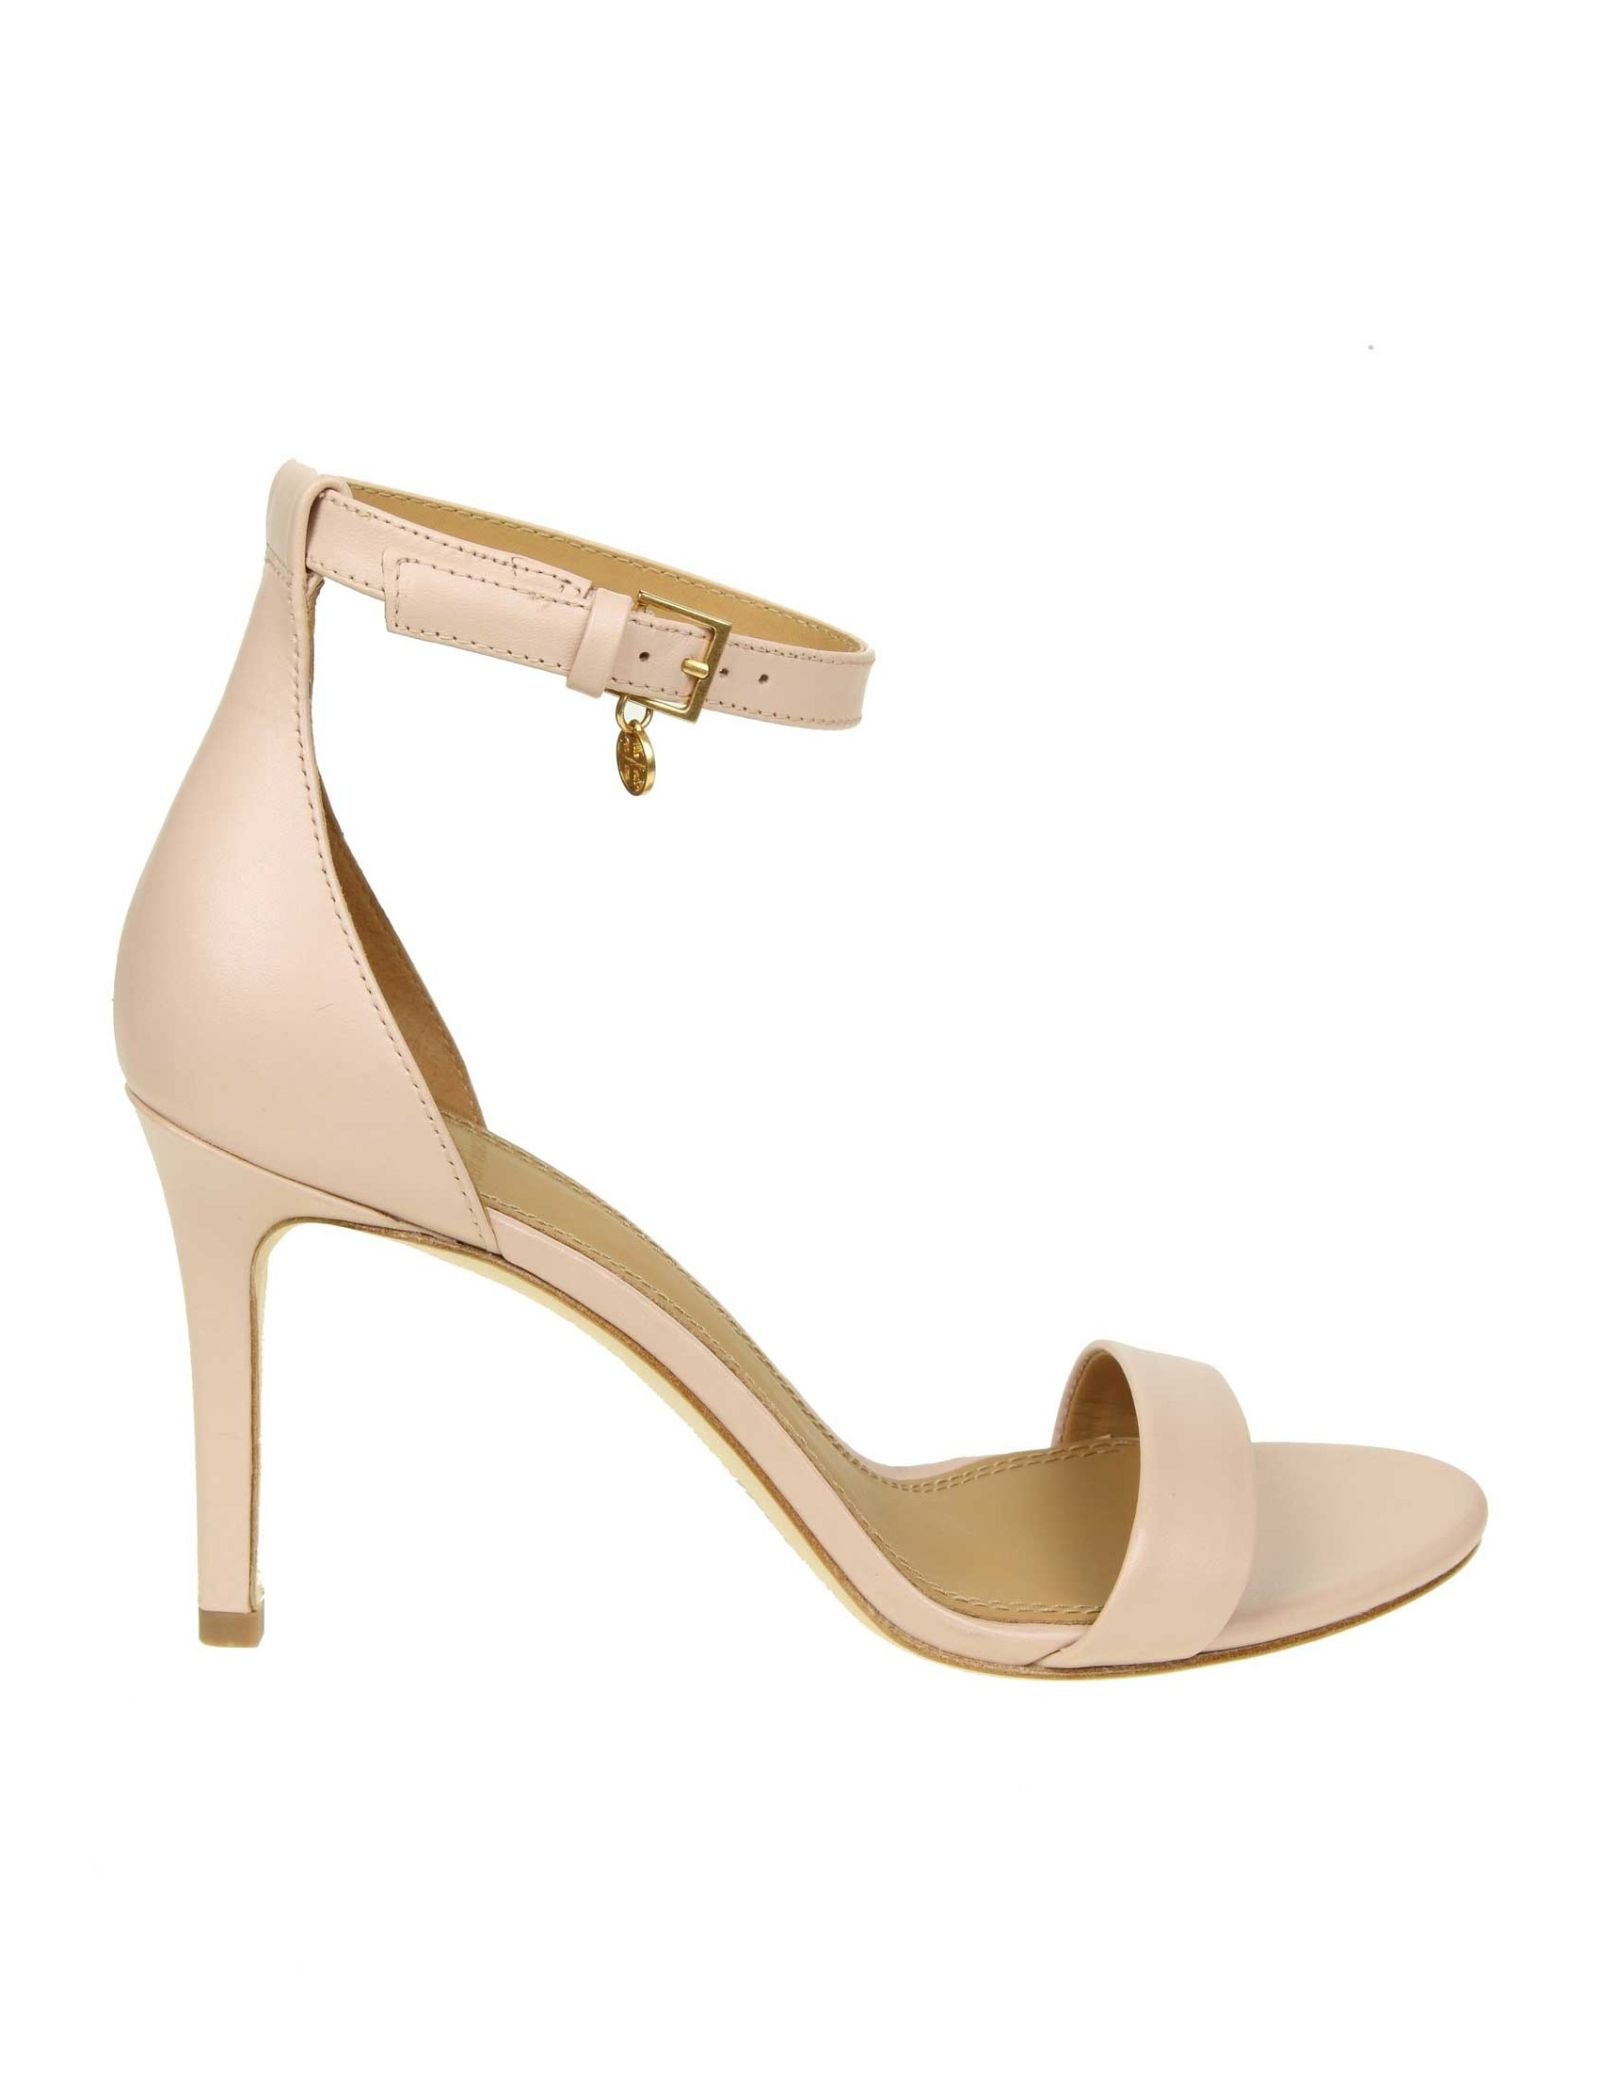 48ce1922c7e Tory Burch Tory Burch Sandal Ellie In Leather Pink Cipria - Pink ...